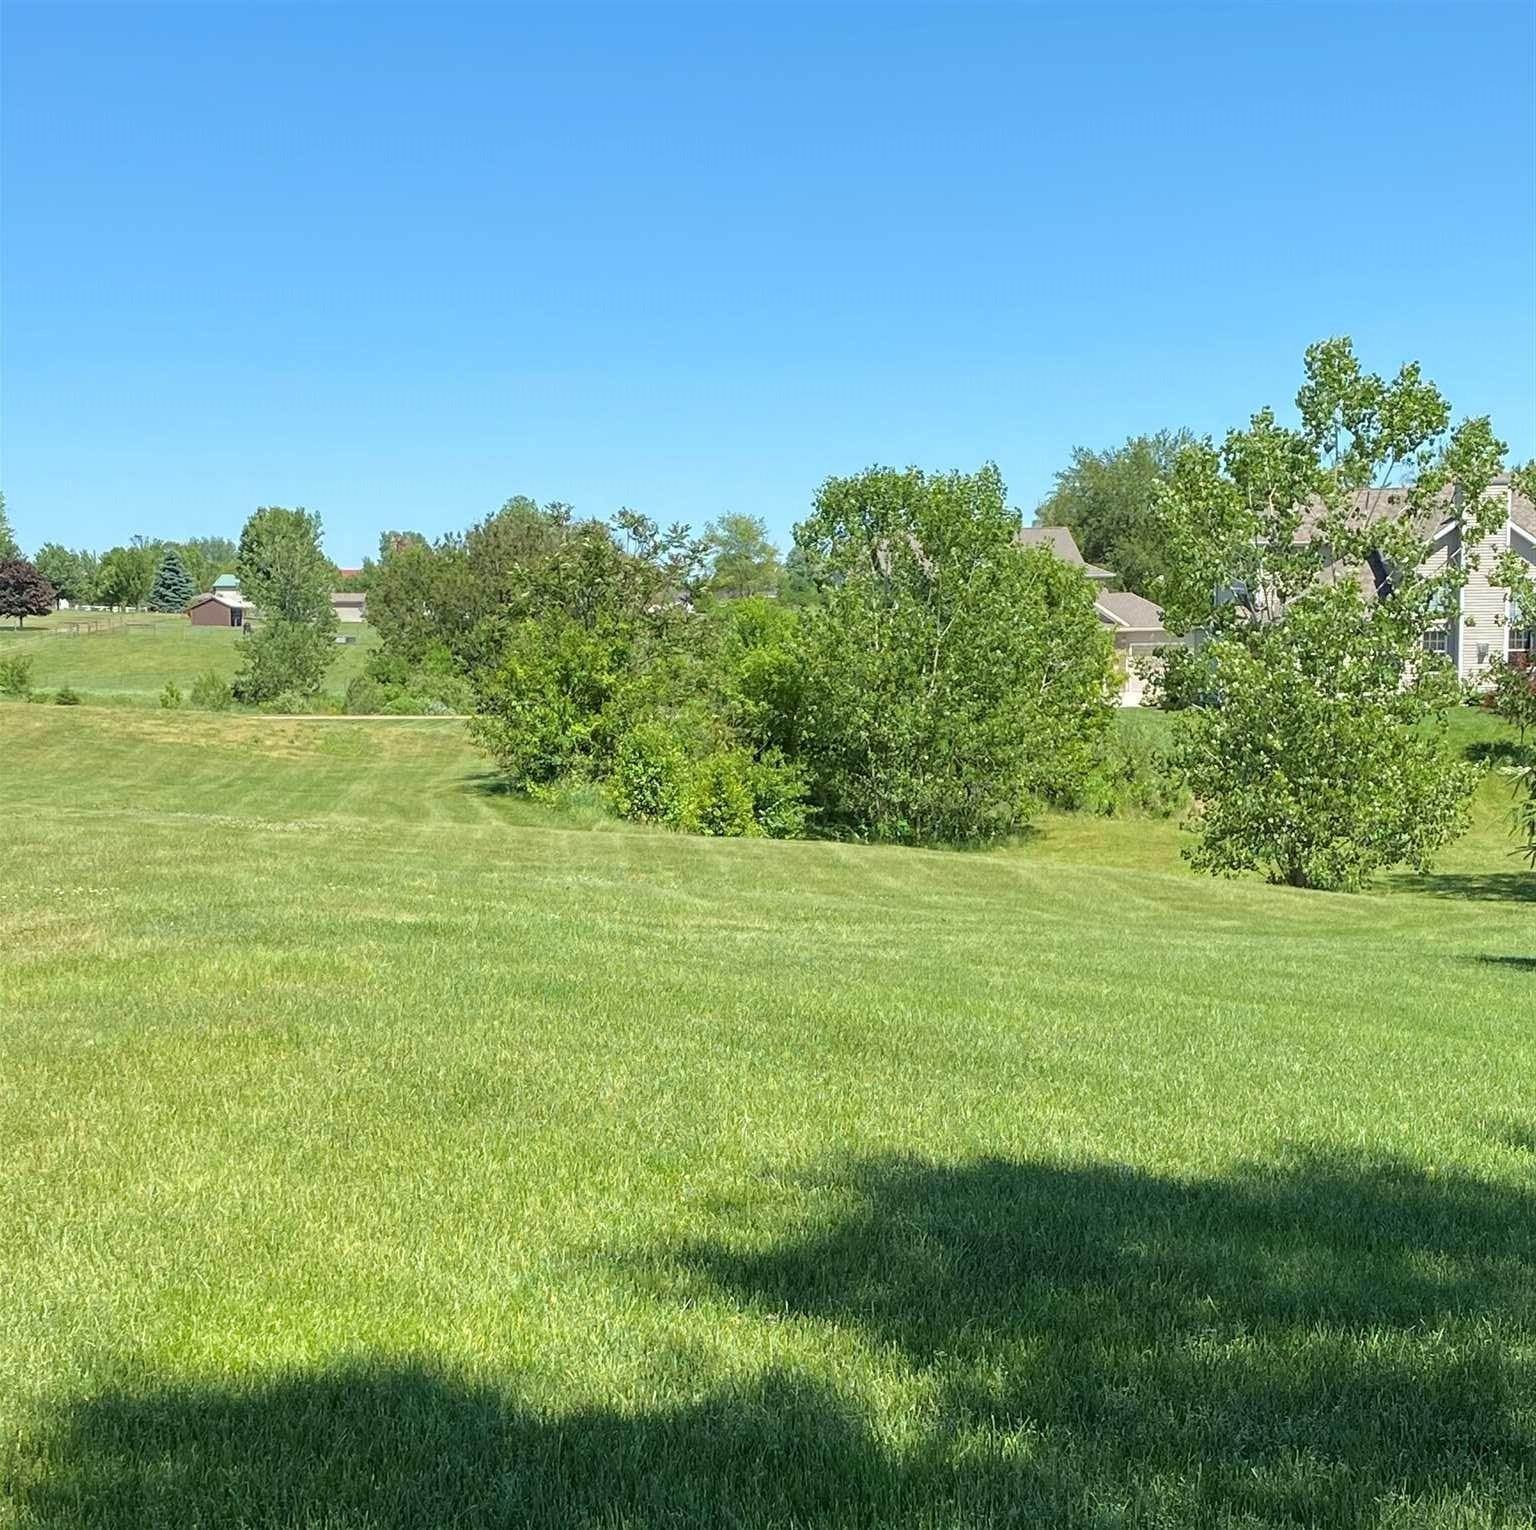 Residential Lots & Land for Sale at Lot# 54 N Horseshoe Bend Middlebury, Indiana 46540 United States